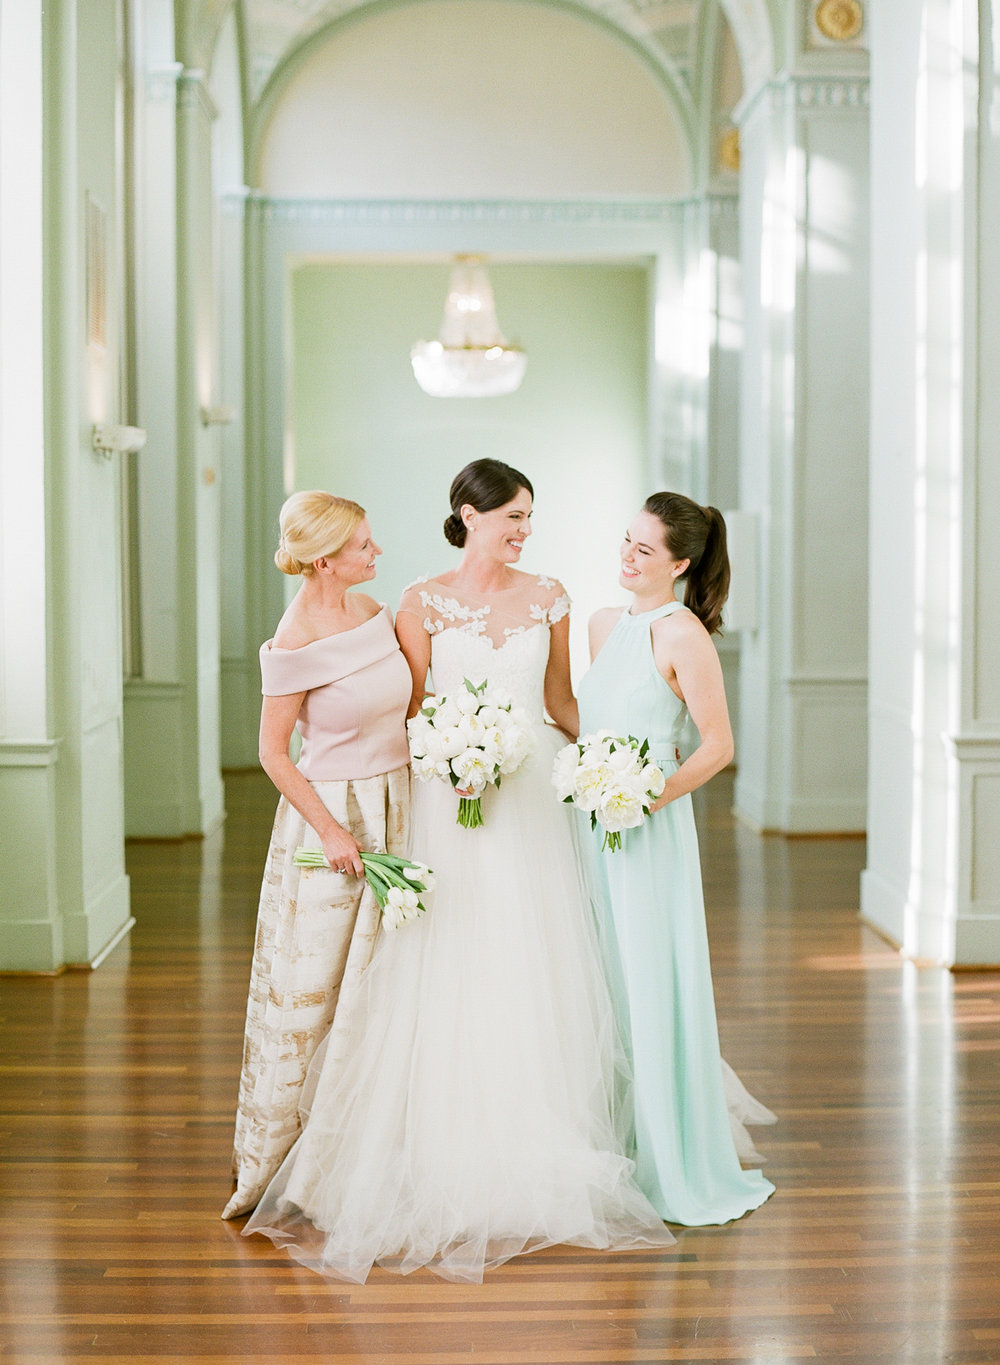 SouthernWeddings_SawyerBaird (340 of 388).JPG